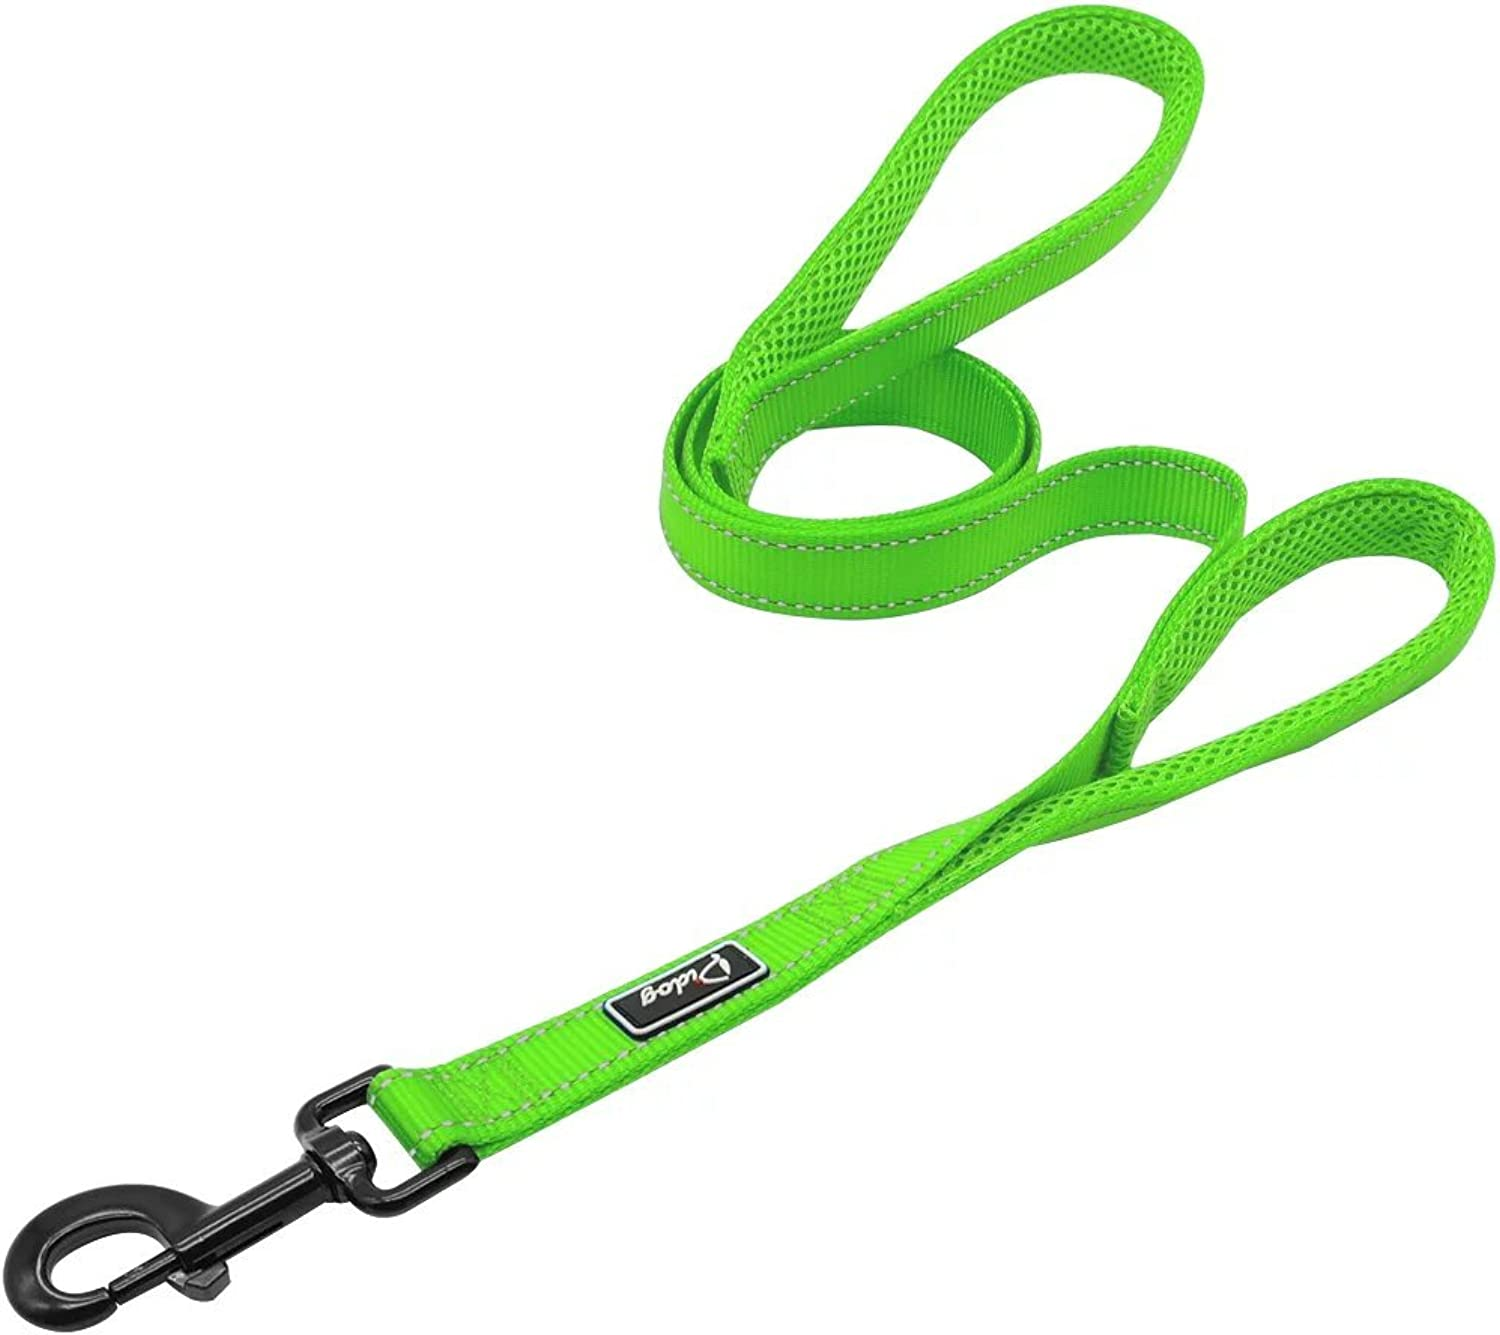 Didog 4 Feet No Pull Nylon Webbing Reflective Dog Leash,Training Dog Leash in Traffic,Green